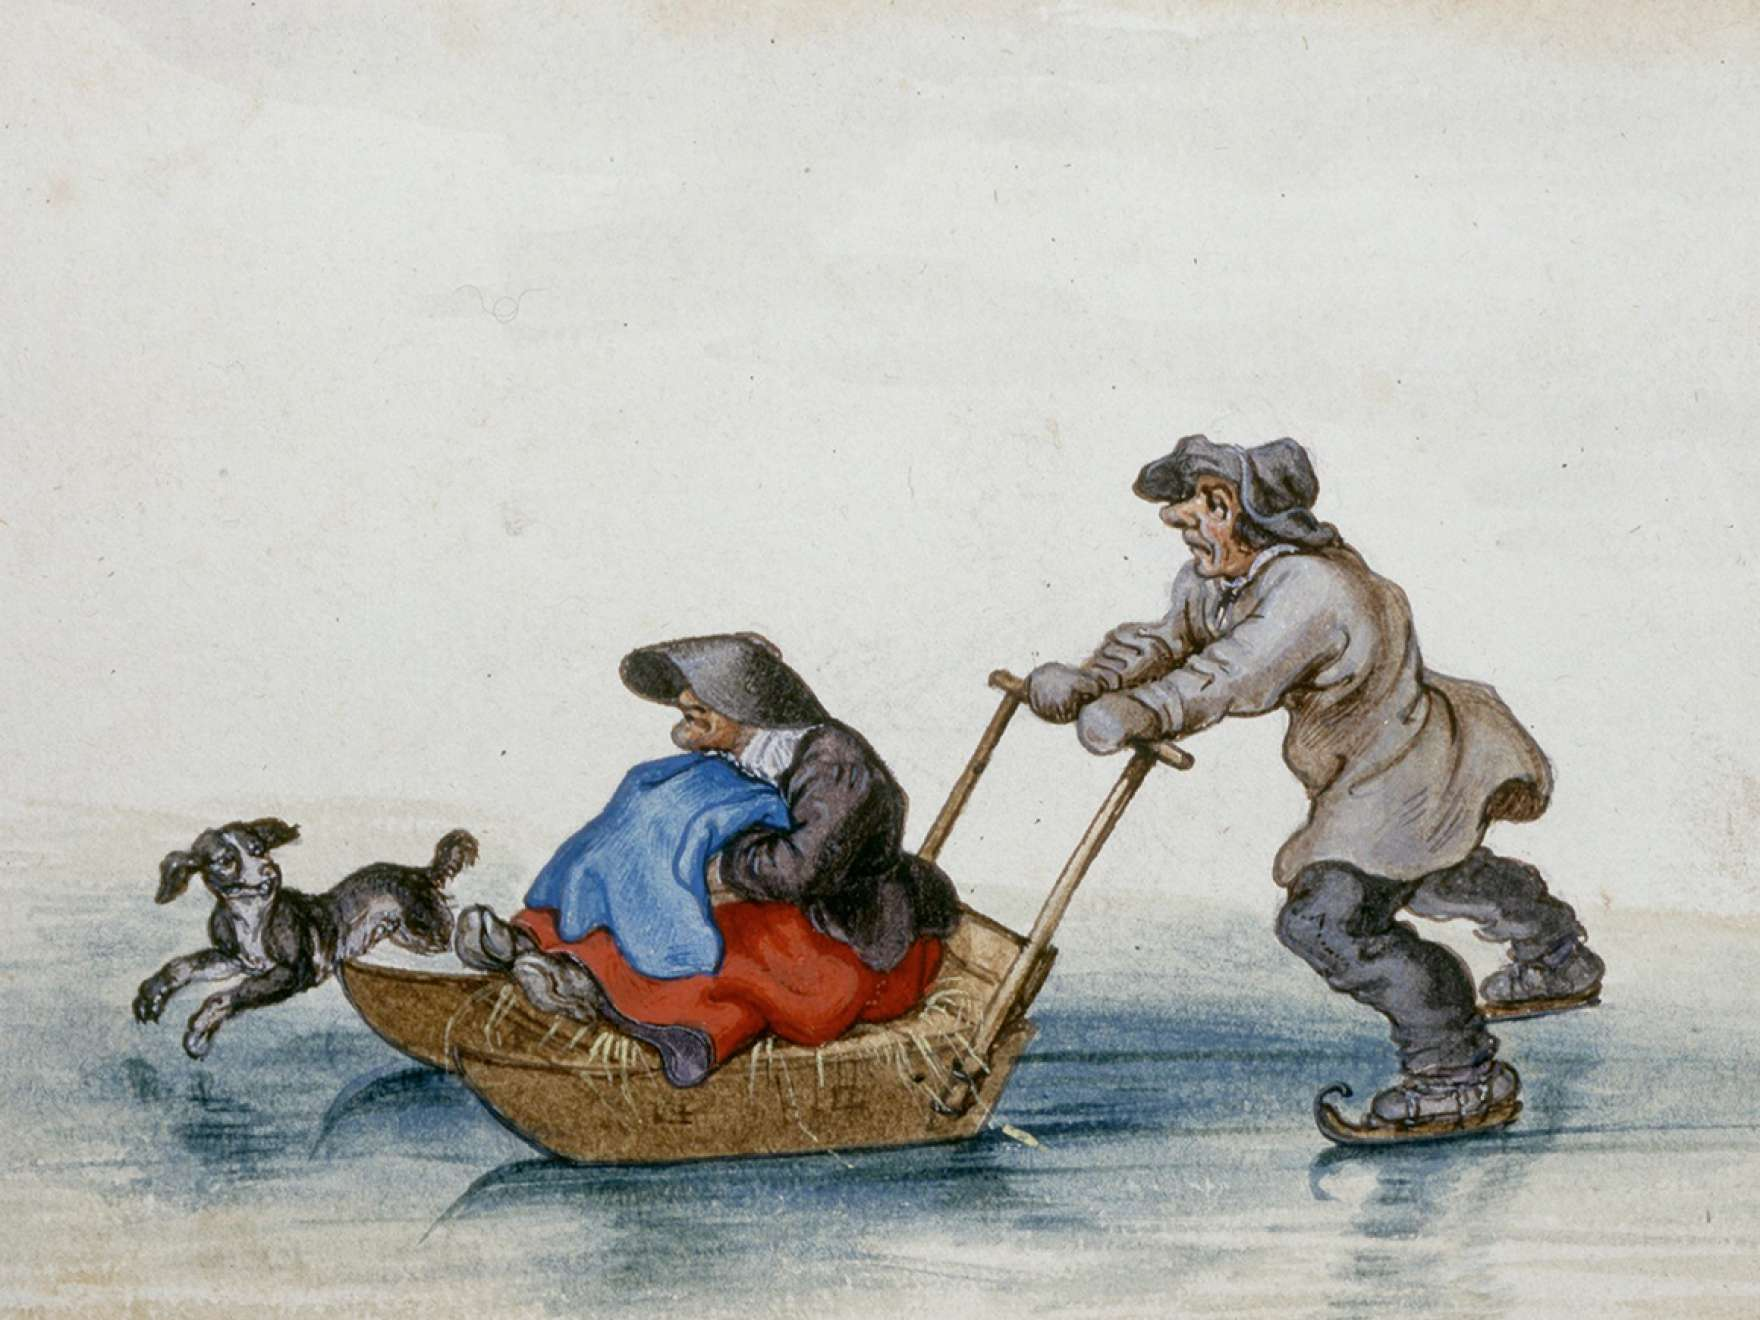 Adriaen Van De Venne, (Watercolor) A Peasant Pushing a Woman on a Sledge, 1625